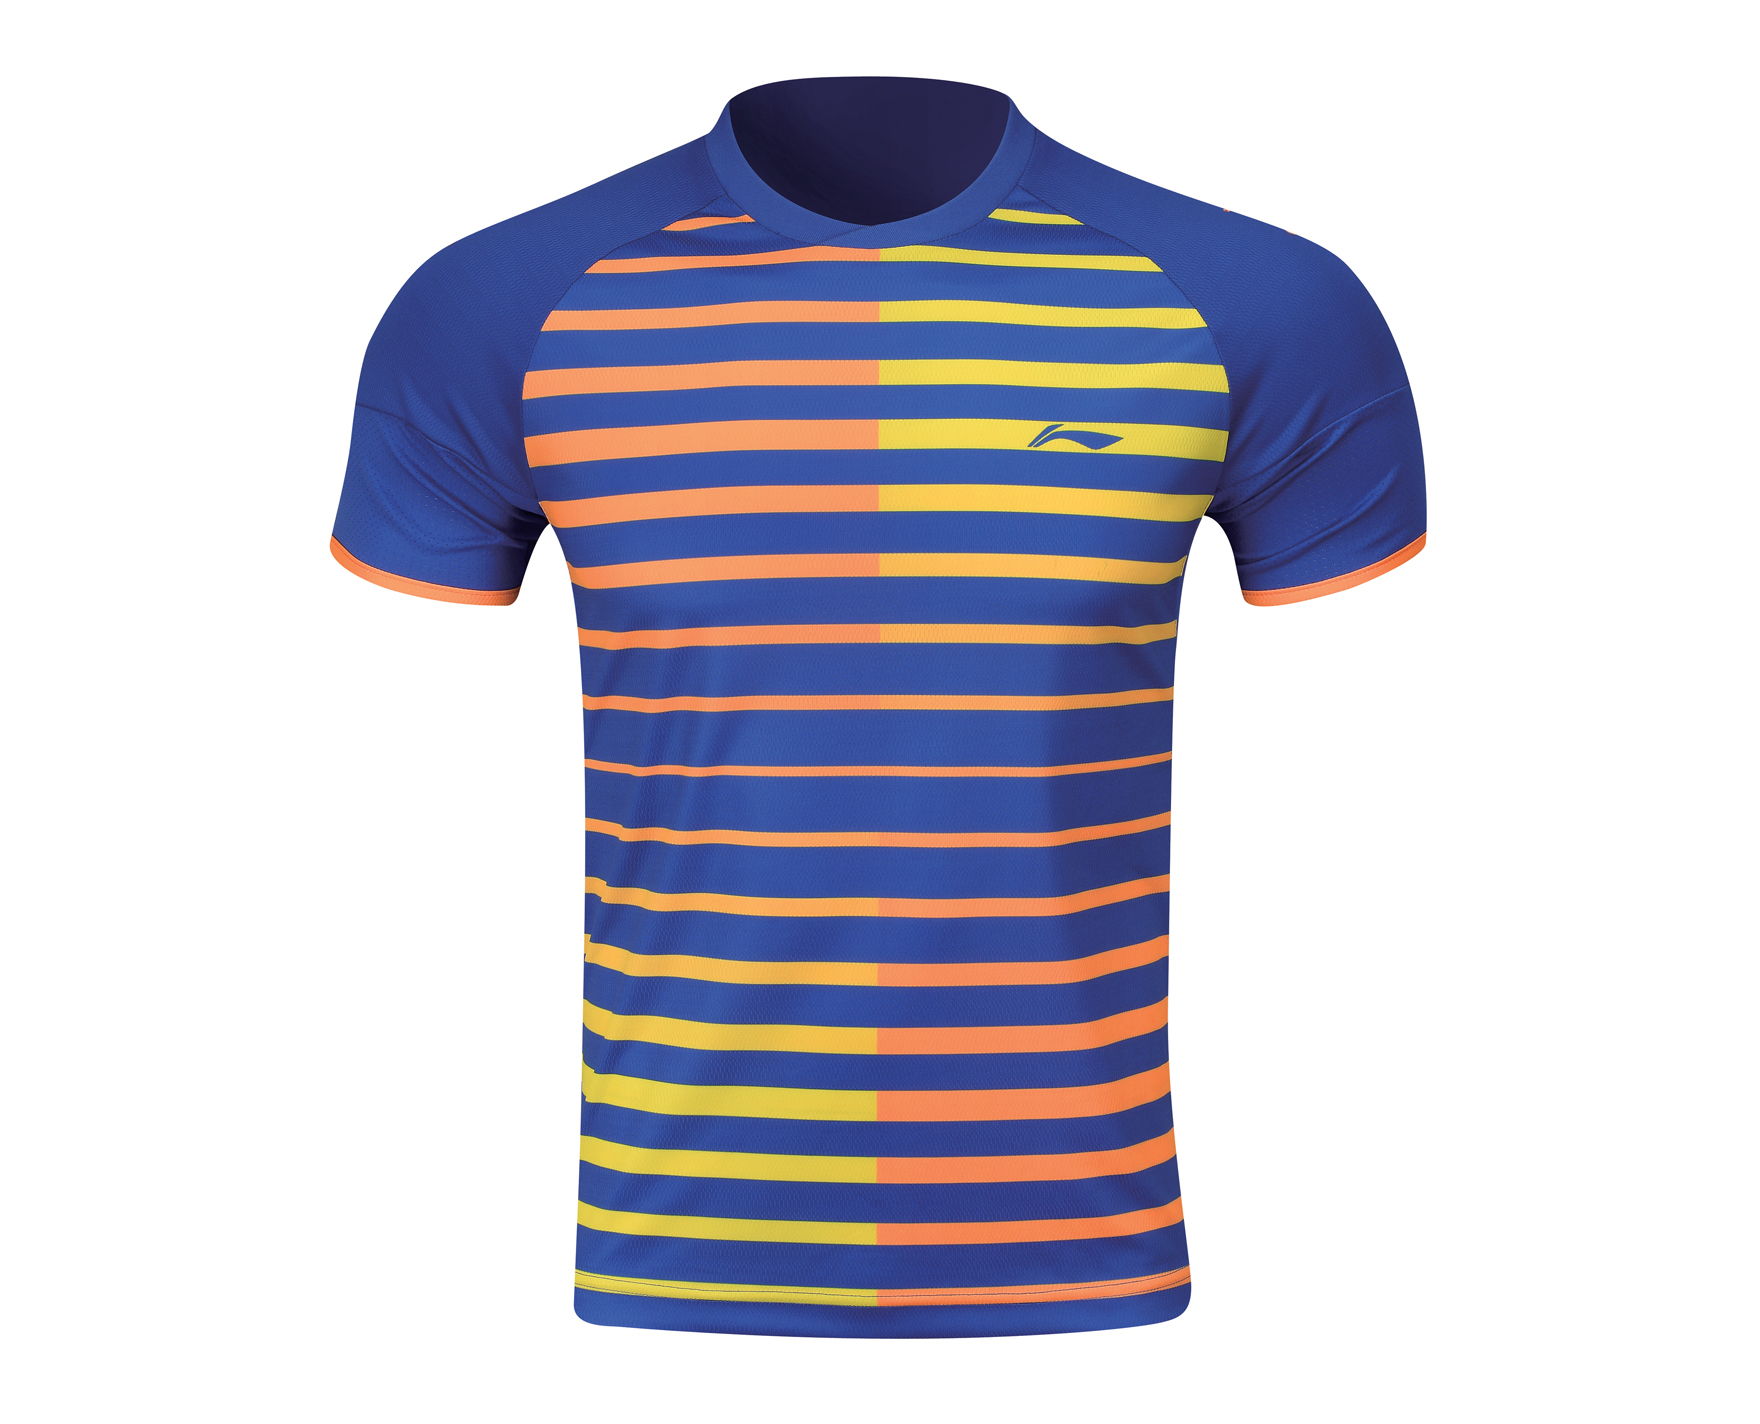 5bdaa457 Men's Badminton T Shirt [BLUE] AAYL119-2 [AAYL119-2]